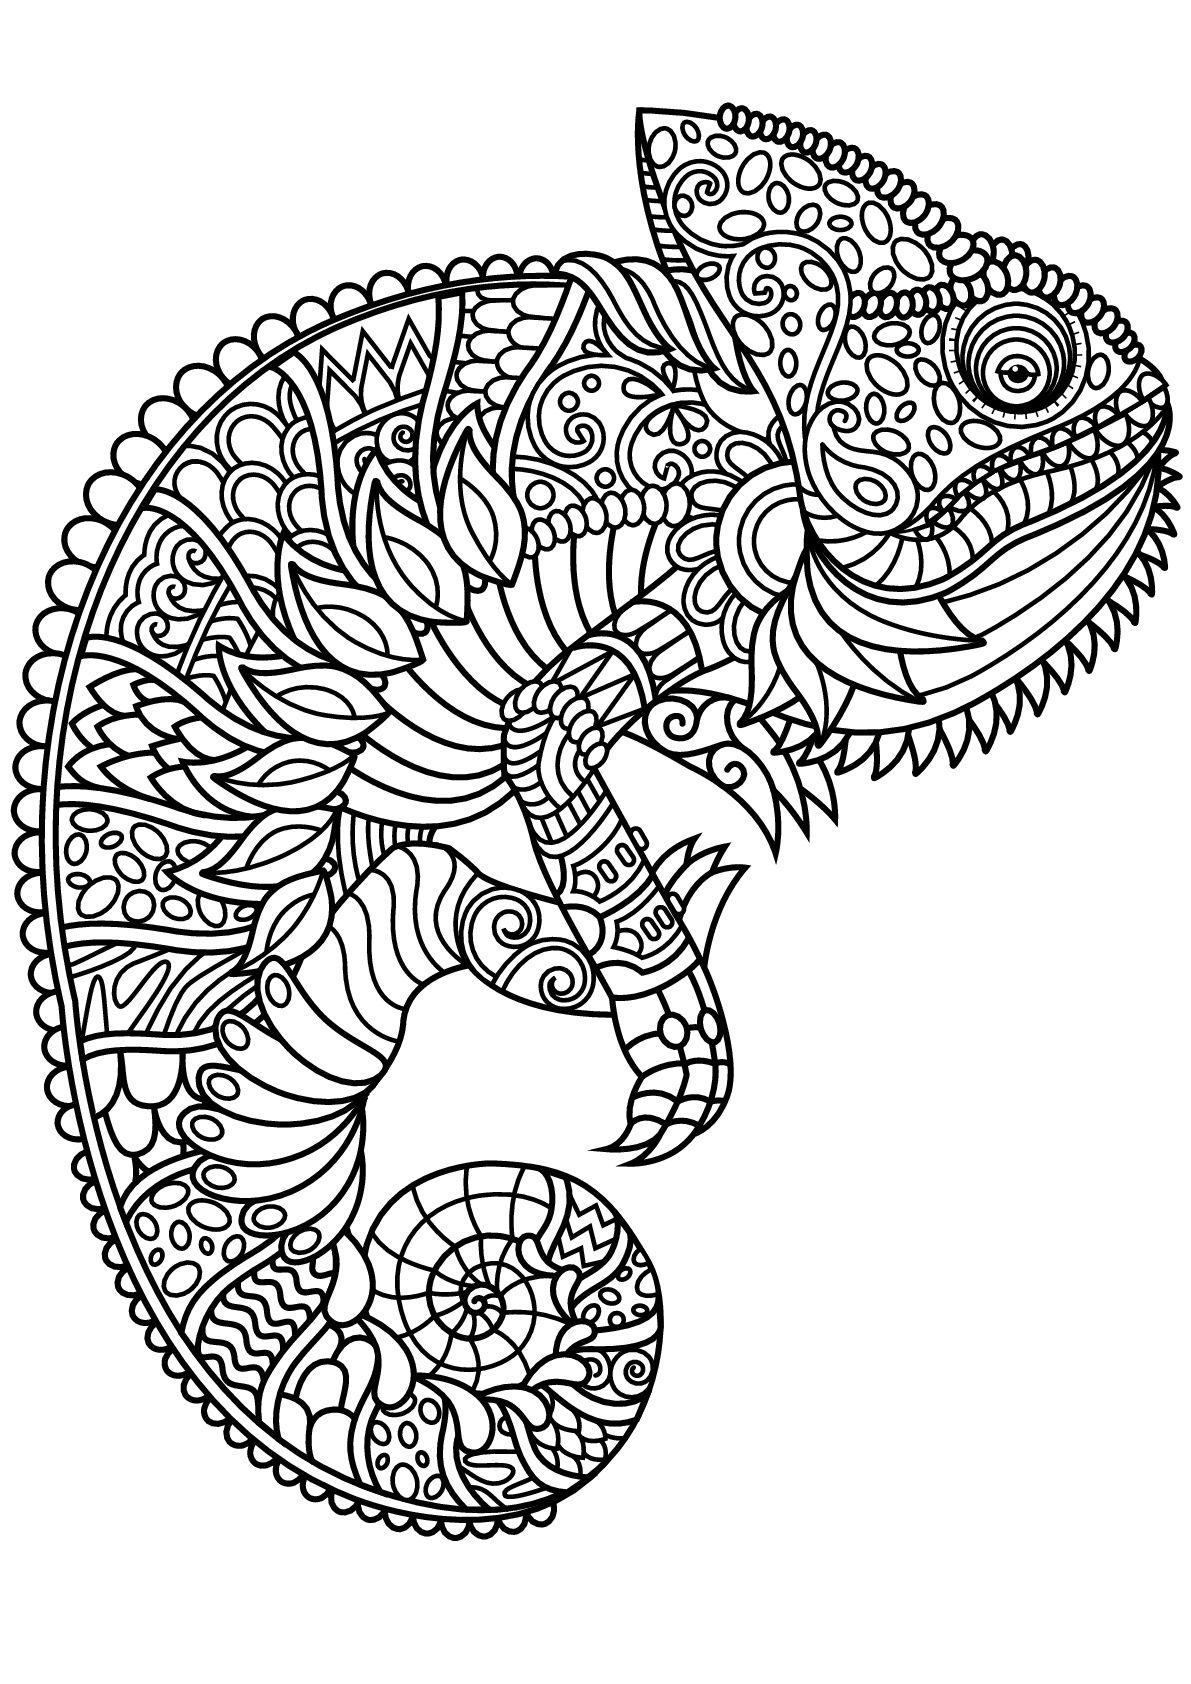 Chameleon with complex and beautiful